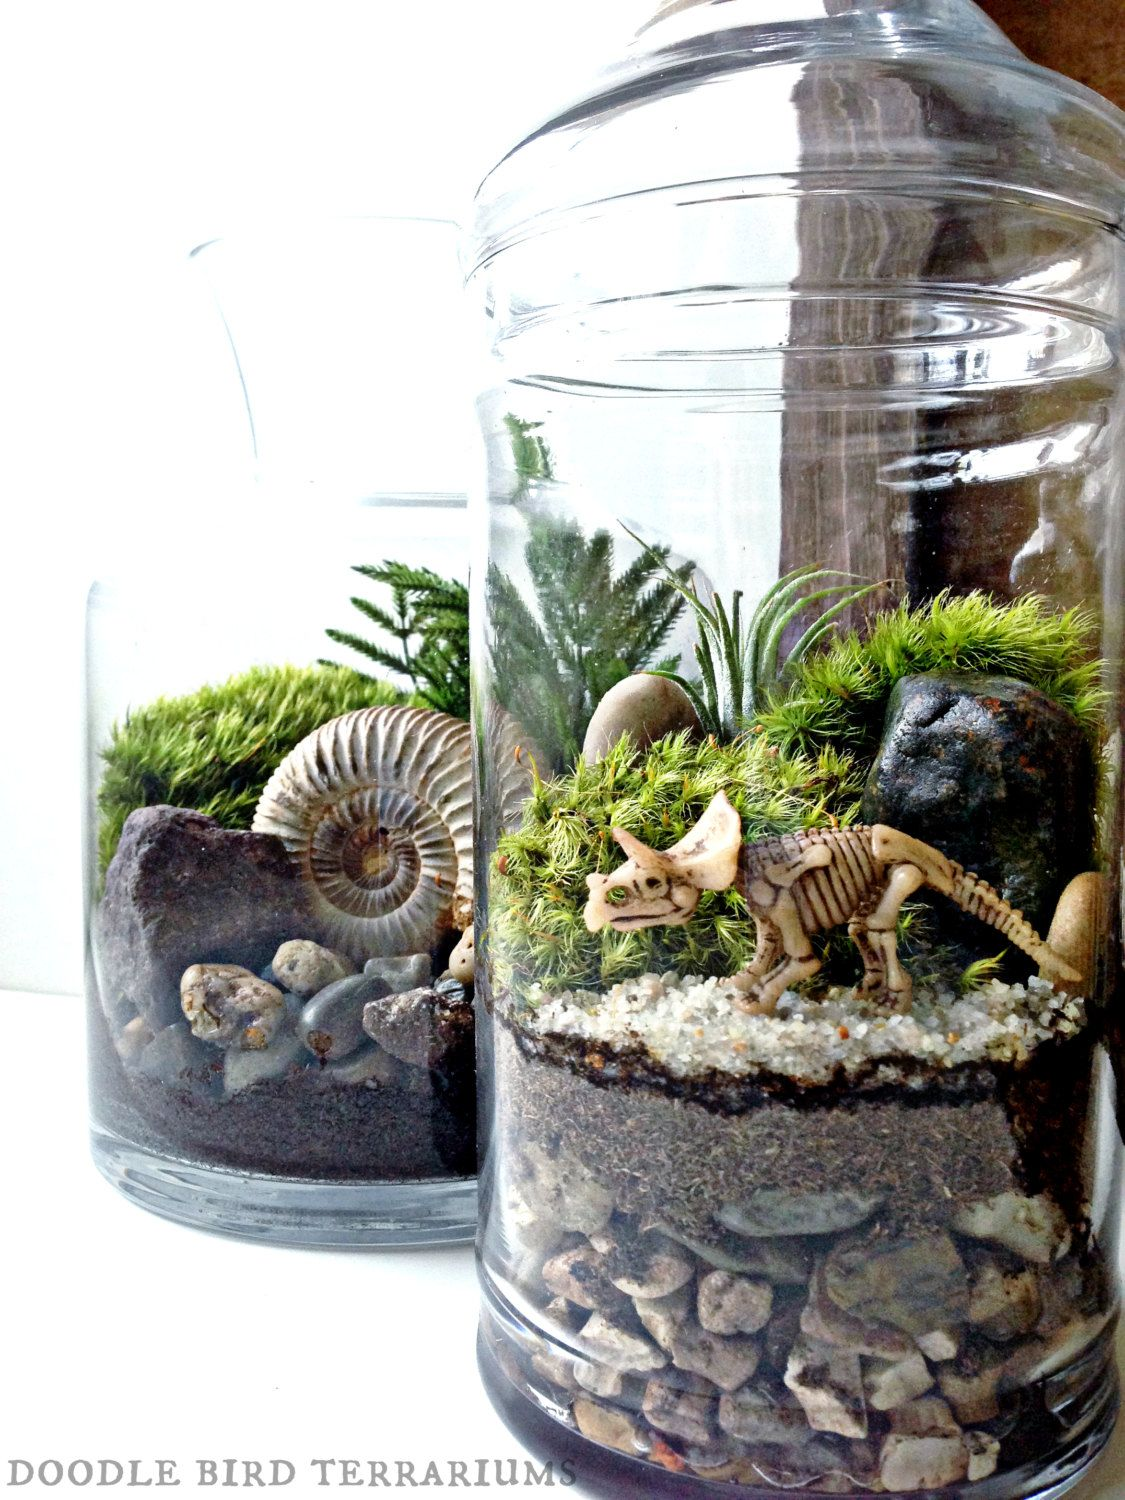 Dinosaur Fossil Terrarium Jar Features Layers Of Soil, Stone, And Live Moss  Making Up